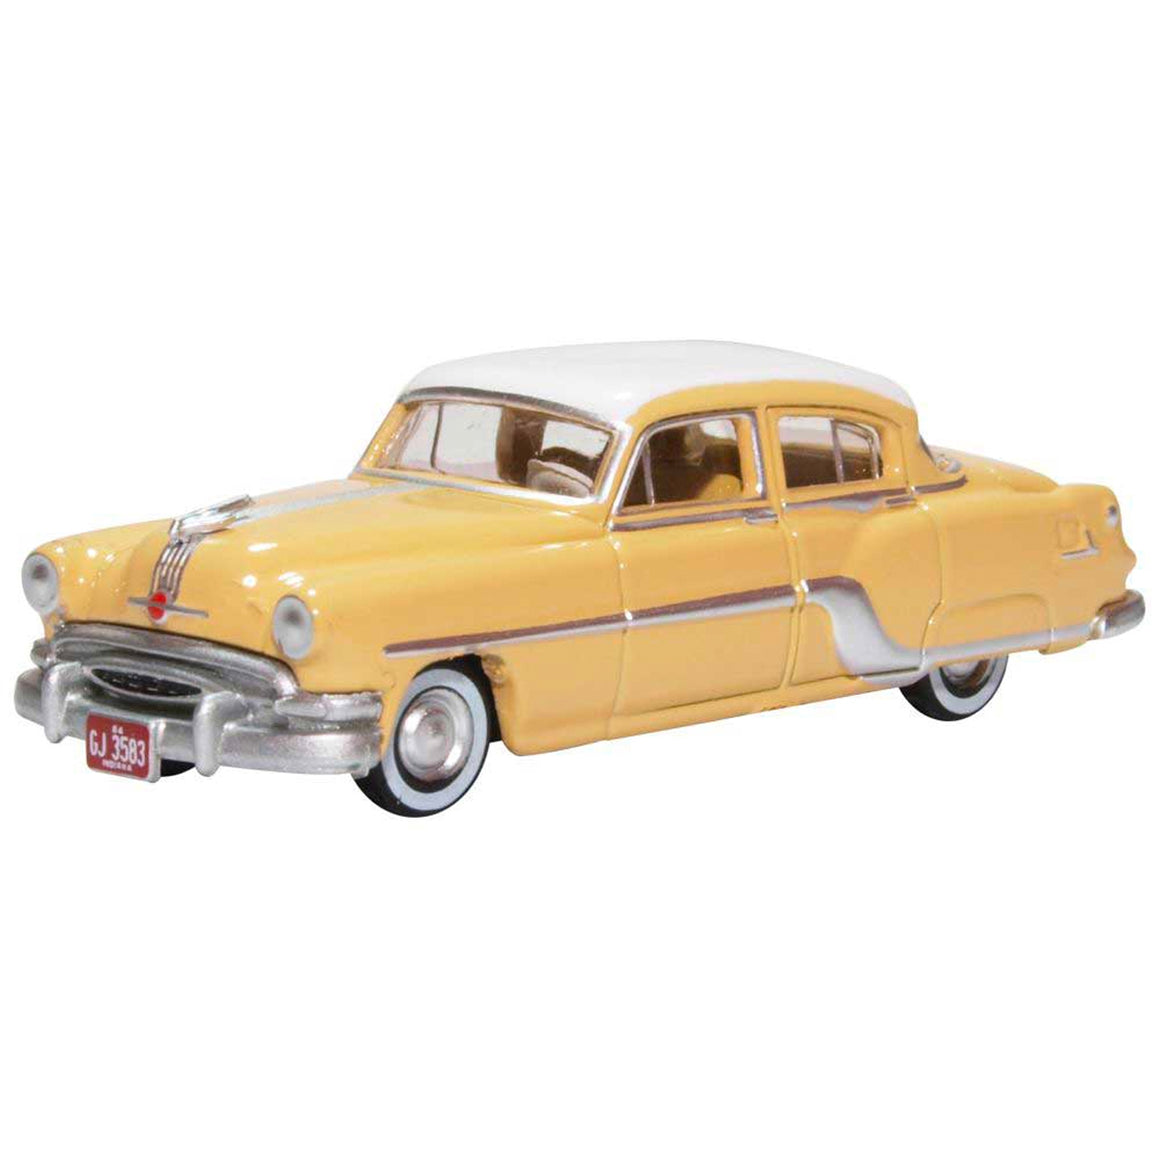 HO Scale: 1954 Pontiac Chieftain 4 Door - Winter White / Maize Yellow